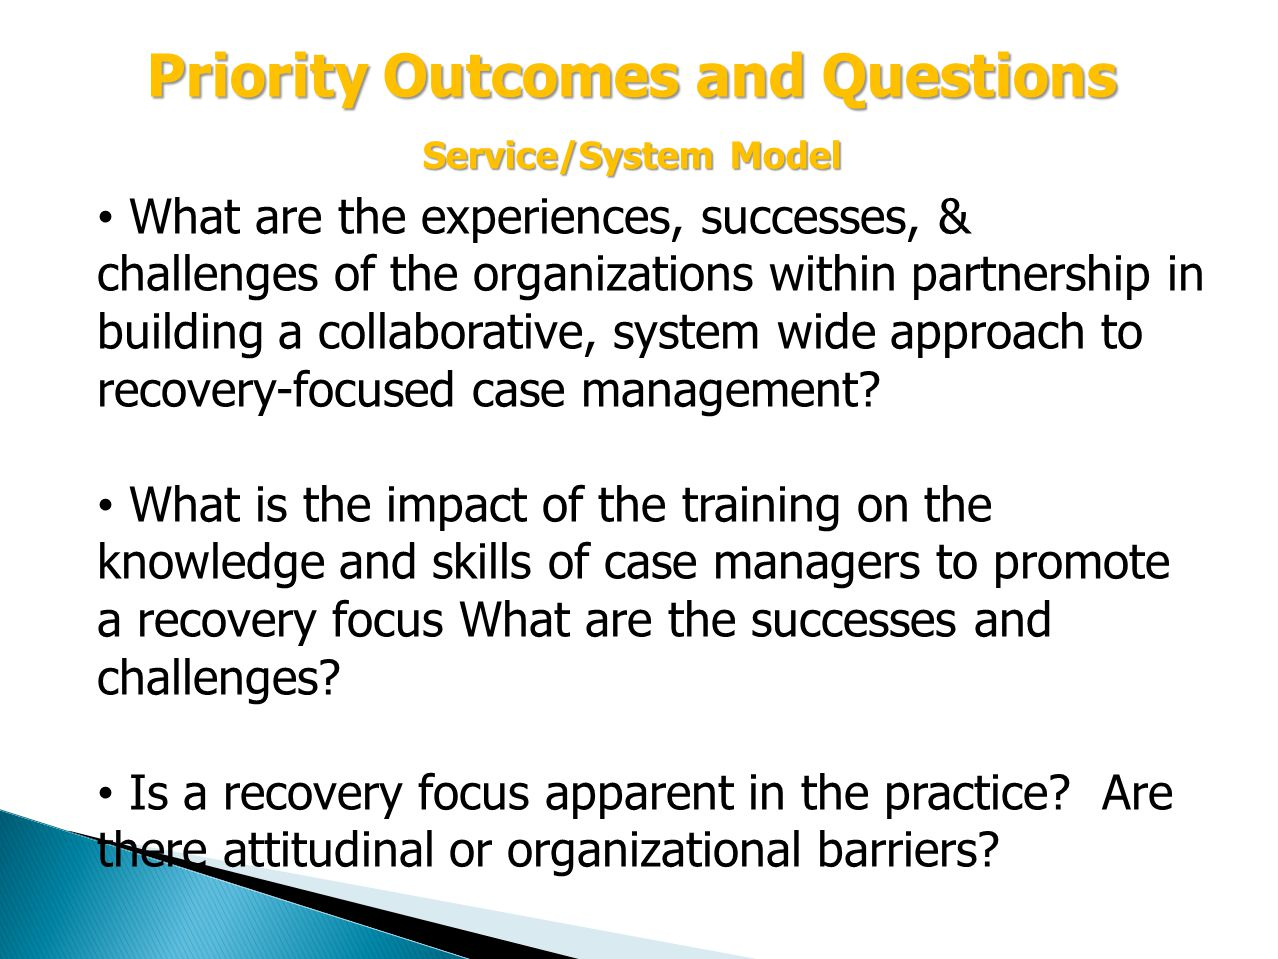 What are the experiences, successes, & challenges of the organizations within partnership in building a collaborative, system wide approach to recovery-focused case management.